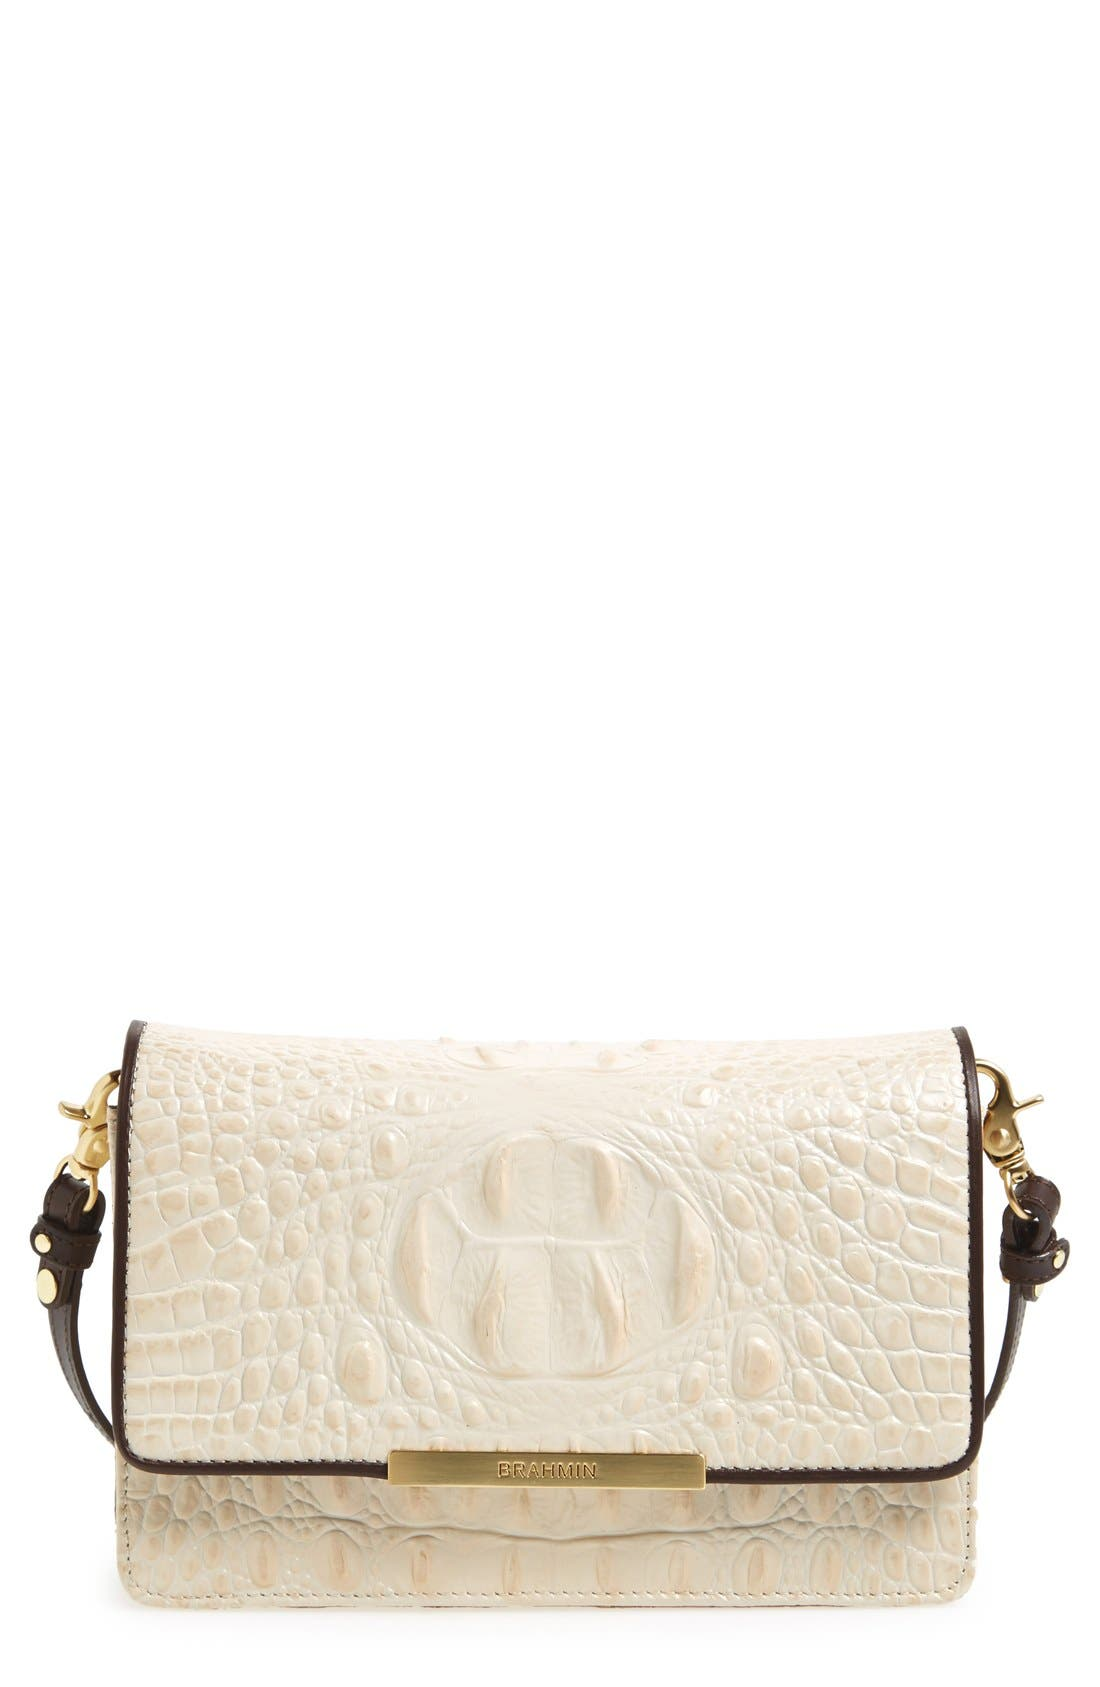 Alternate Image 1 Selected - Brahmin 'Hudson' Convertible Crossbody Bag